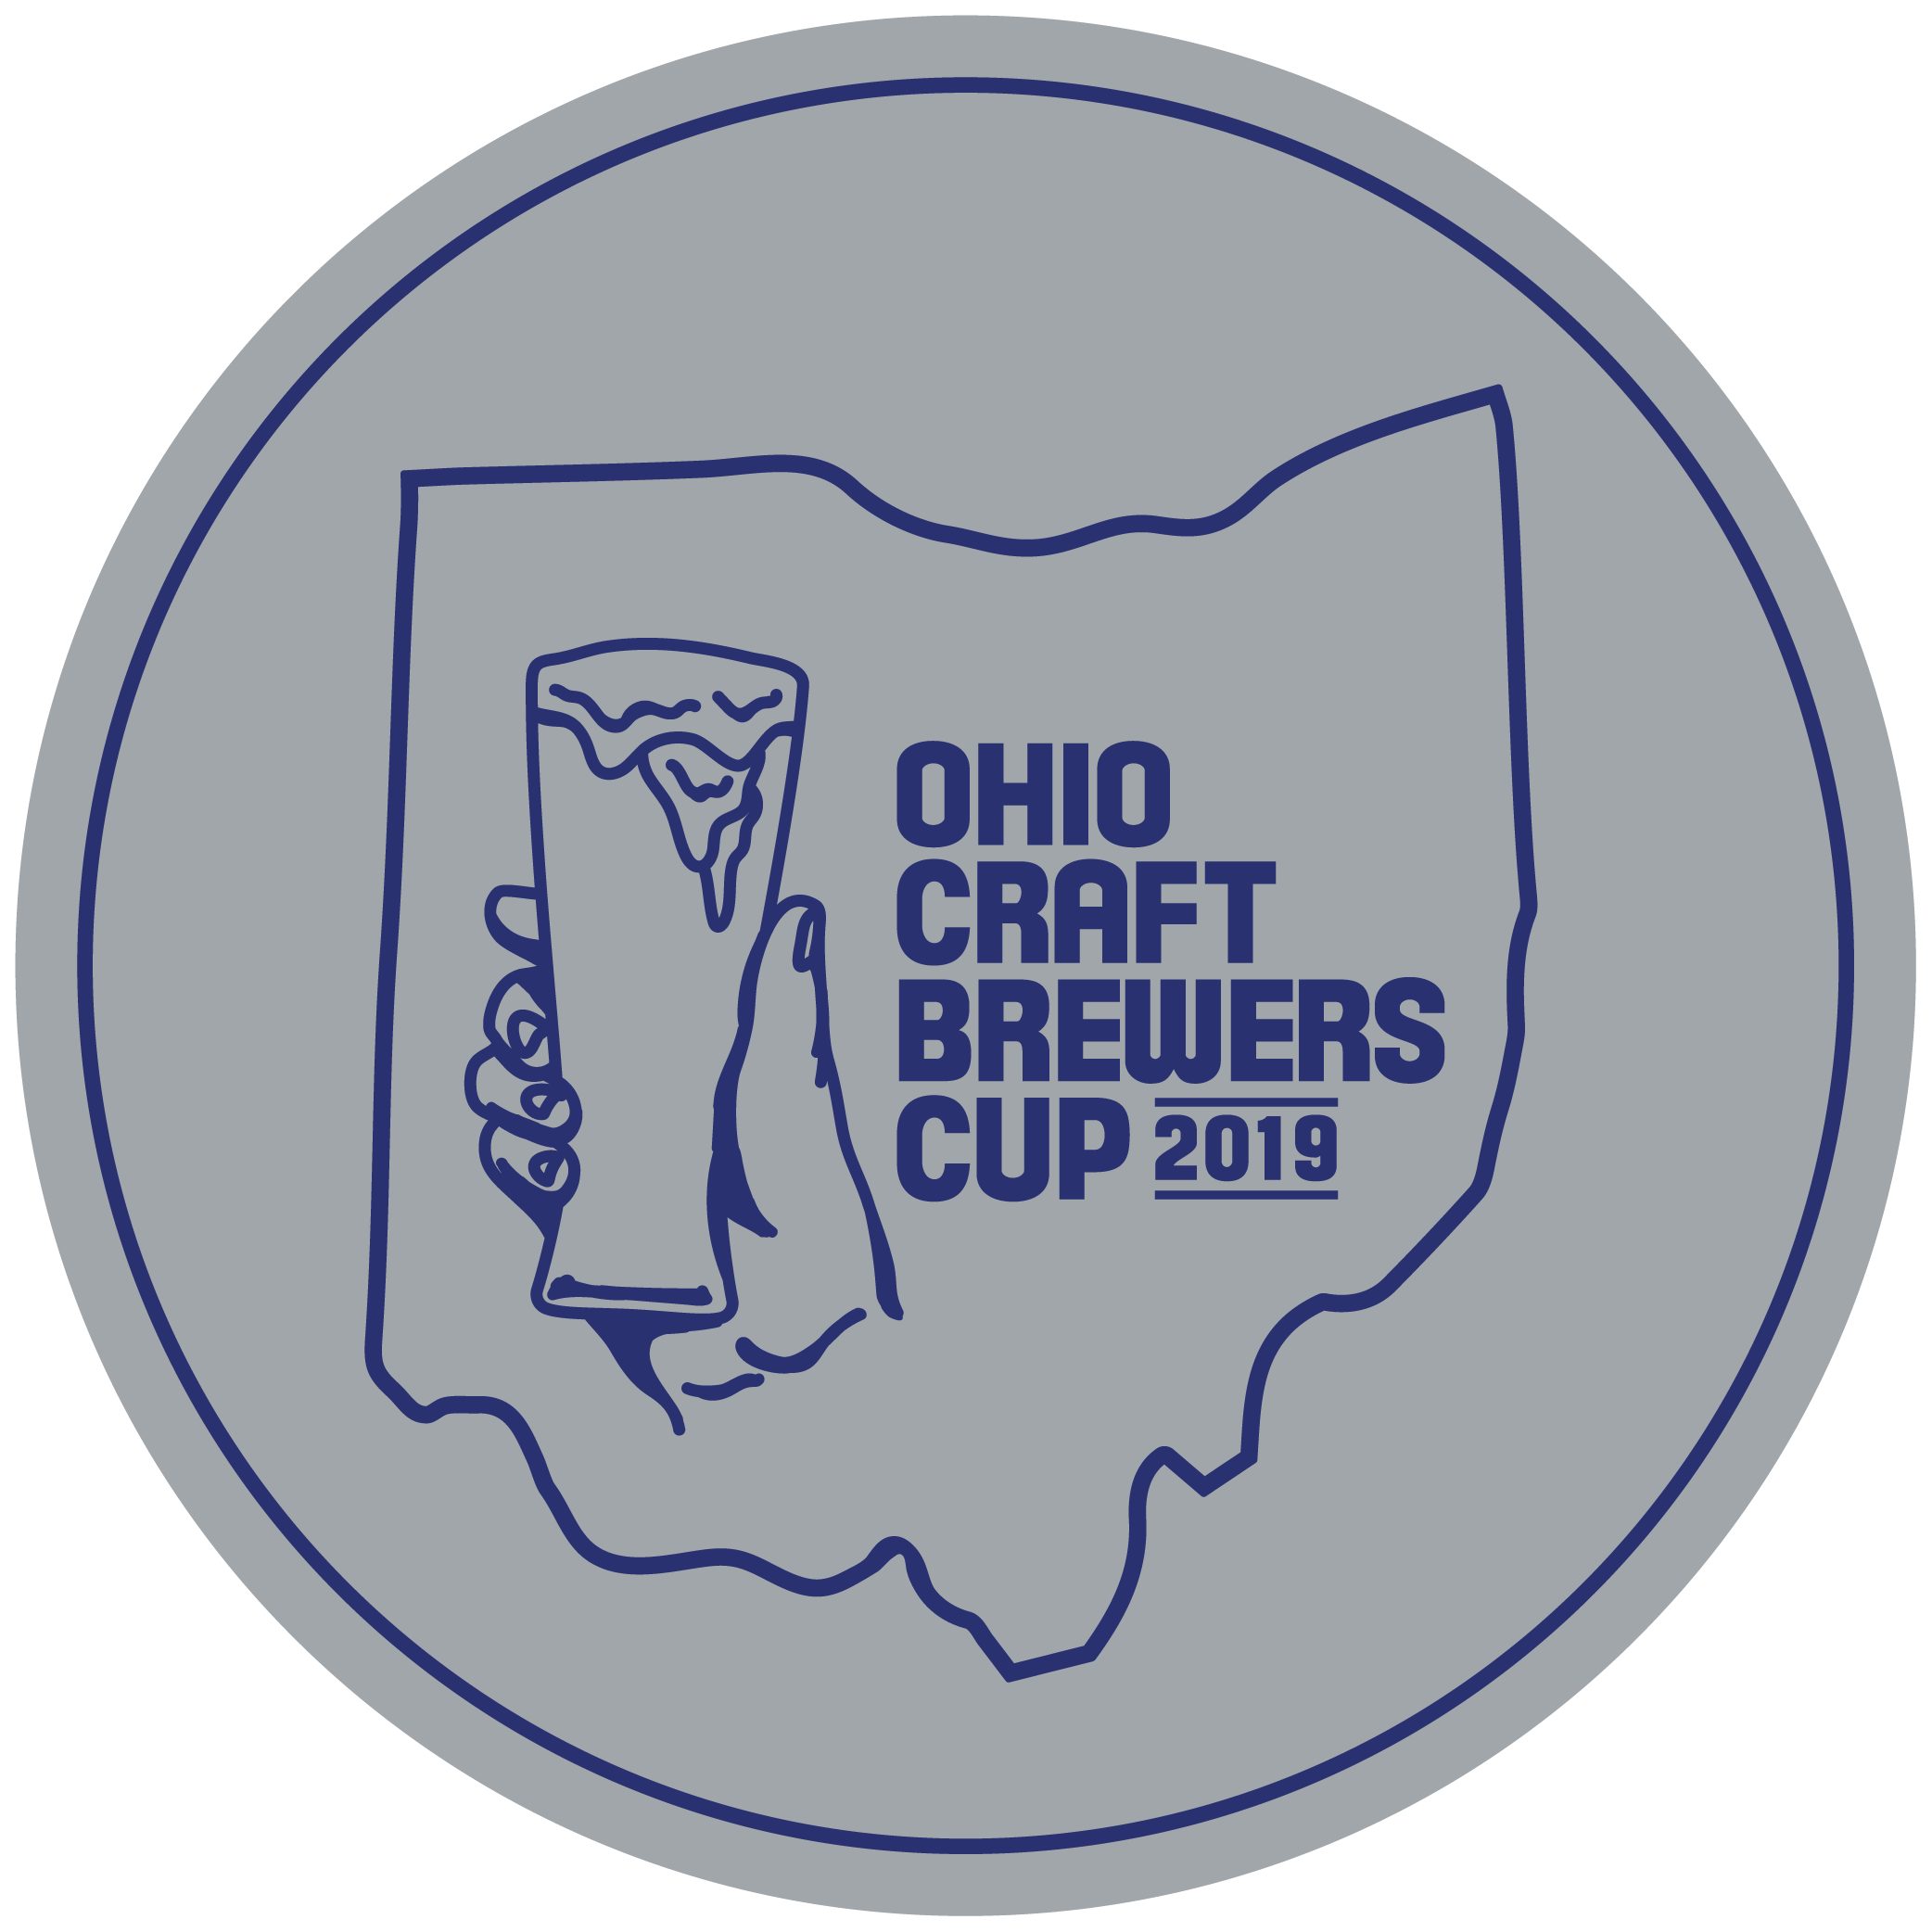 OHIO CRAFT BREWERS CUP 2019 MEDALS-02.png